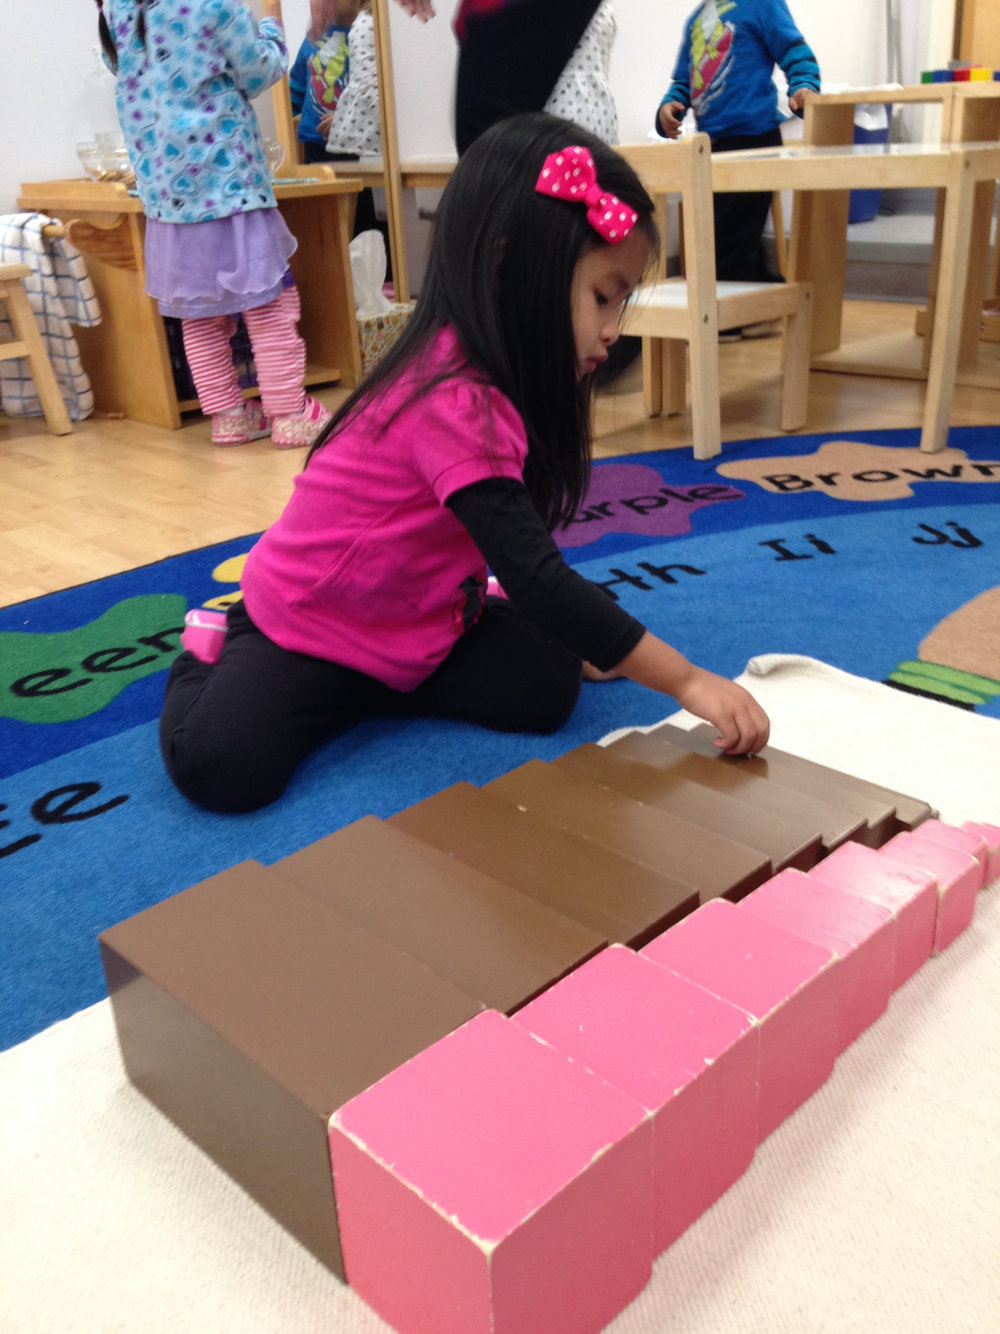 This Toddler 1 student practiced an extension of the classic Montessori materials, the Brown Stair and Pink Tower.  This exercise requires twenty careful trips back and forth to bring the blocks one by one to a work mat.  This part of the process alone is a wonderful opportunity for working the body as well as the mind!  Then, the materials are placed in order from thickest/largest to thinnest/smallest. This helps to develop awareness of patterns and discrimination by size using both the visual and tactile senses.